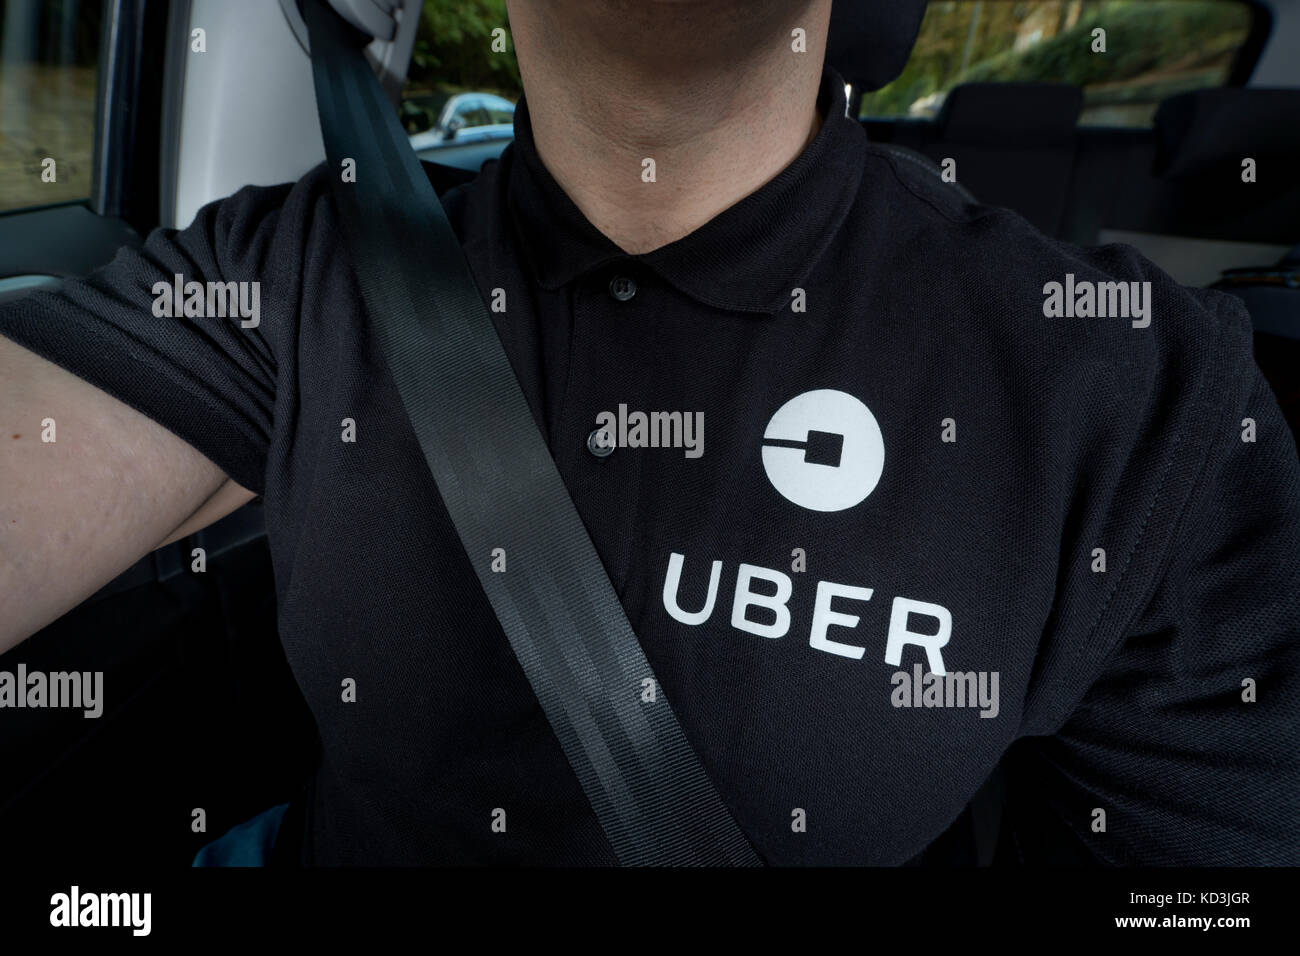 A man wearing a black polo t-shirt bearing the company logo drives an Uber taxi (Editorial use only). - Stock Image